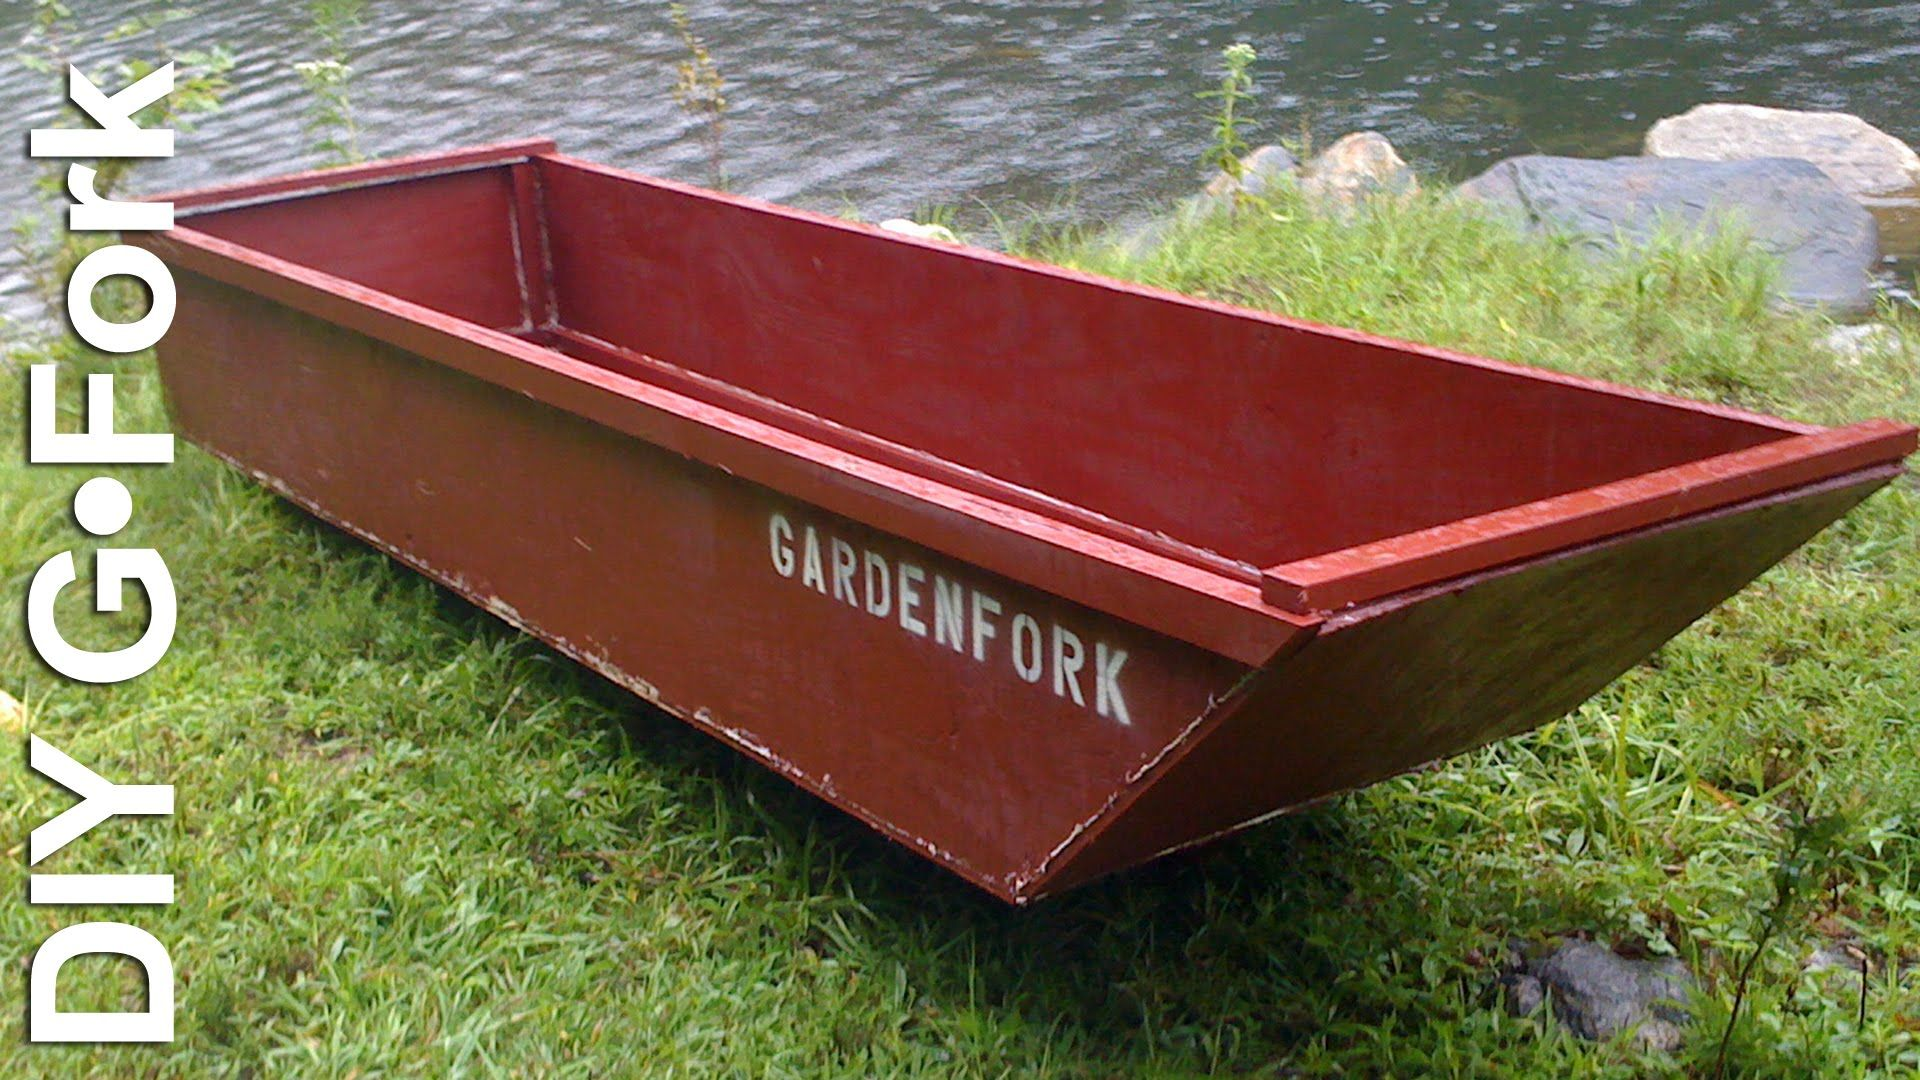 One Sheet Plywood Boat Gardenfork Tv Plywood Boat Plans Plywood Boat Wooden Boat Plans